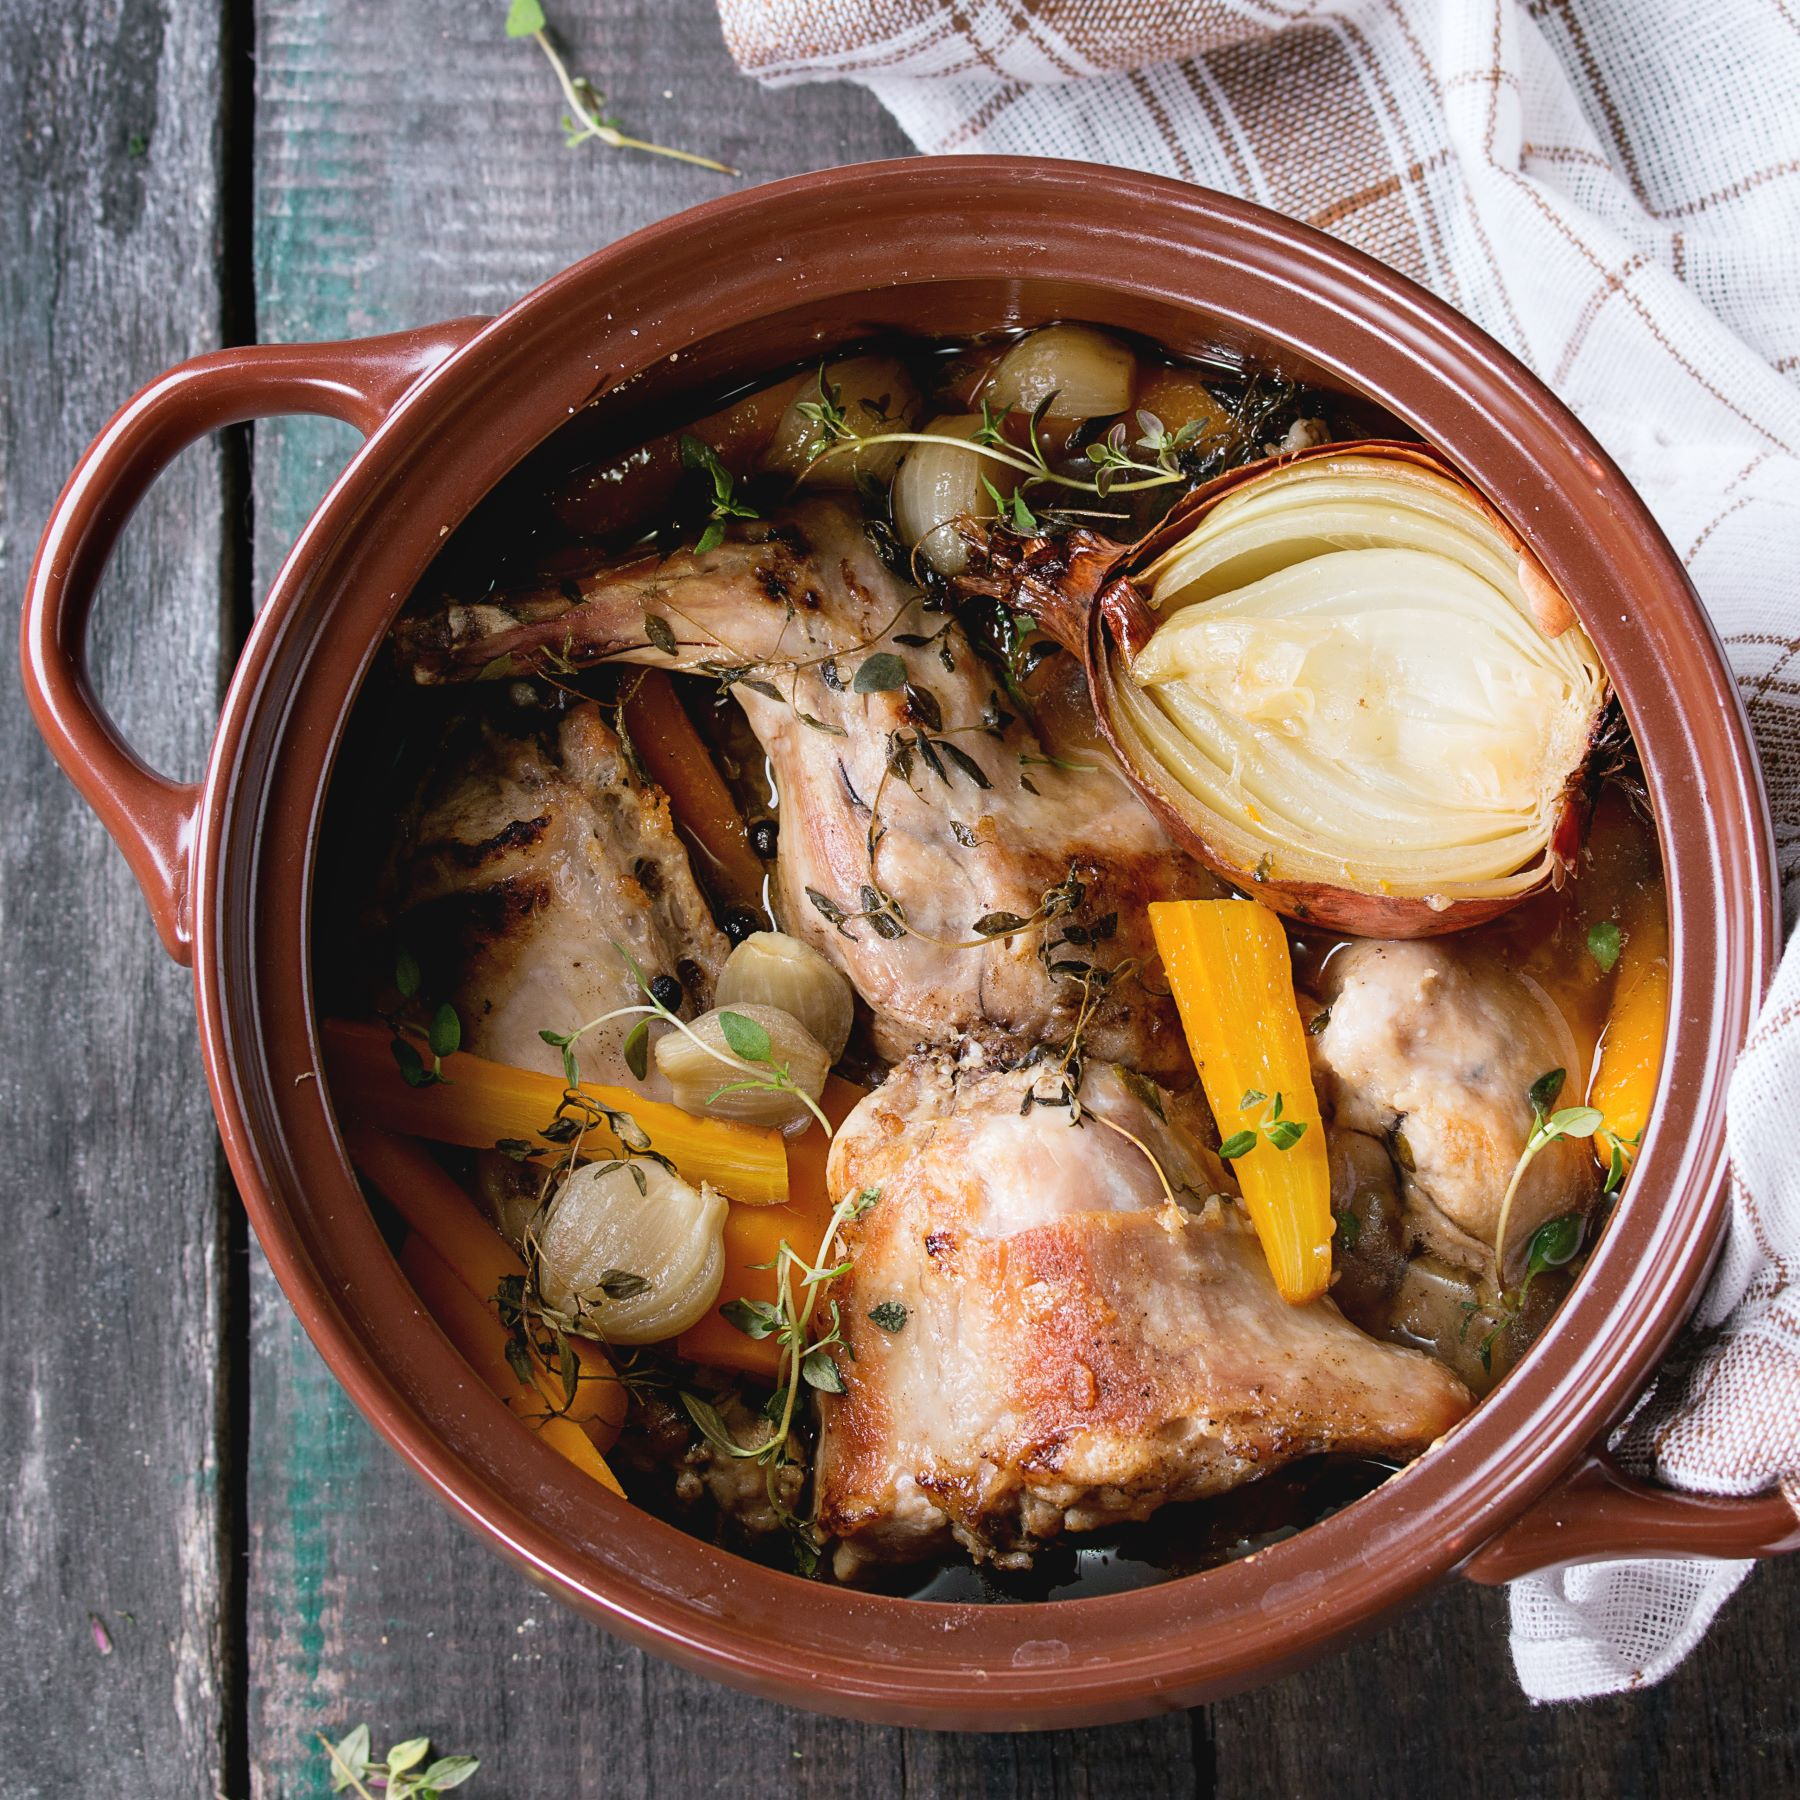 Rabbit braised with prunes and beer